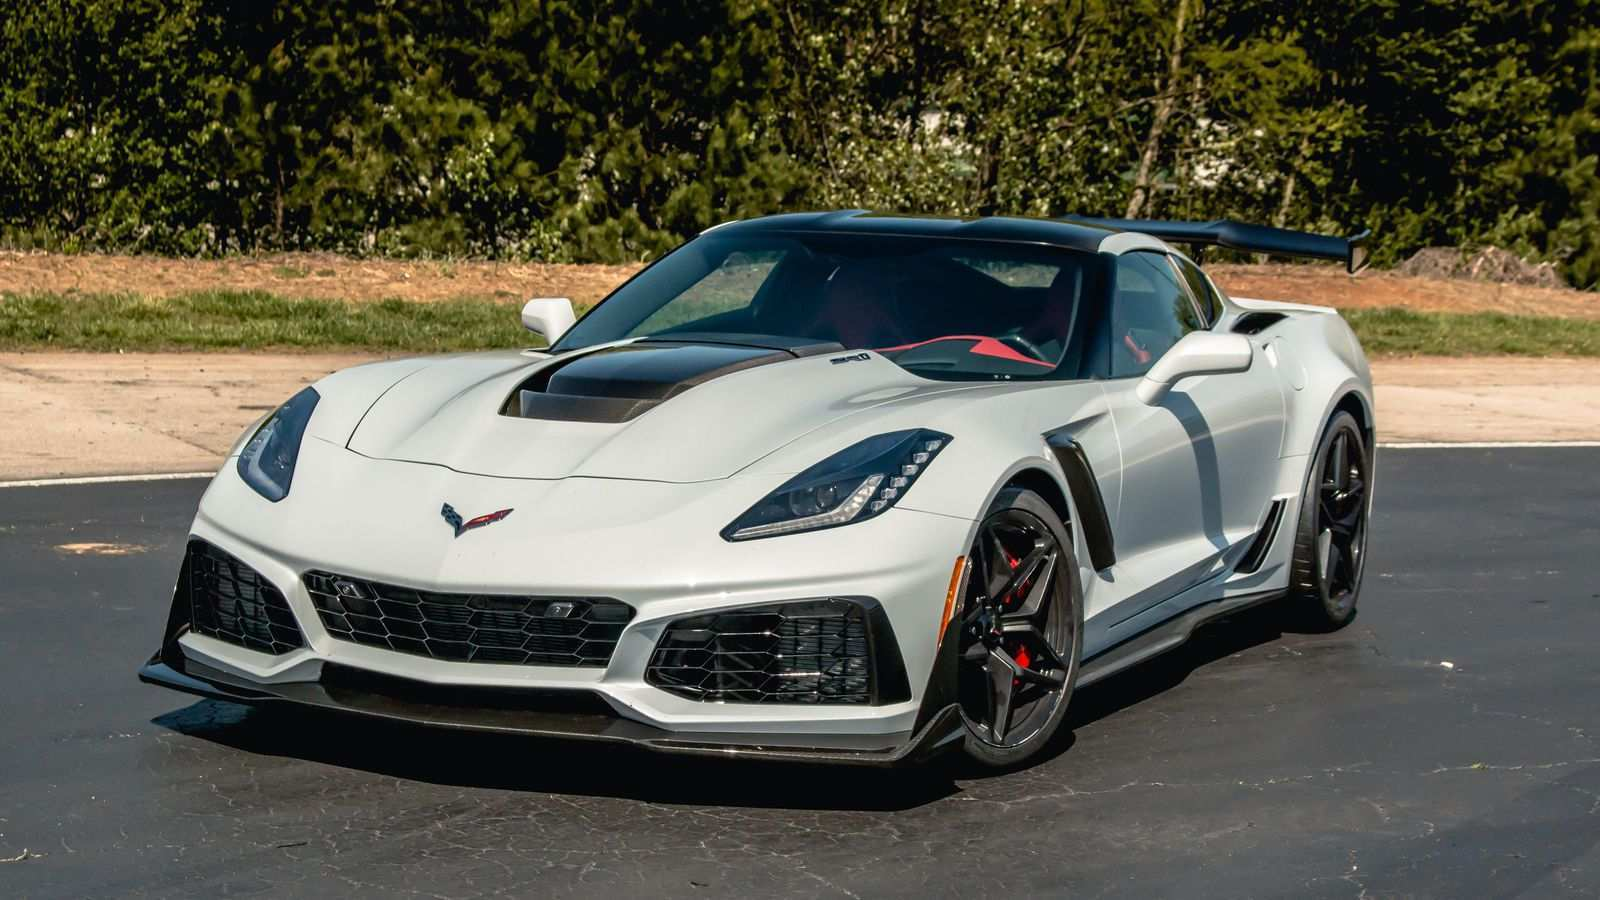 25 All New 2019 Chevrolet Corvette Zr1 Concept And Review